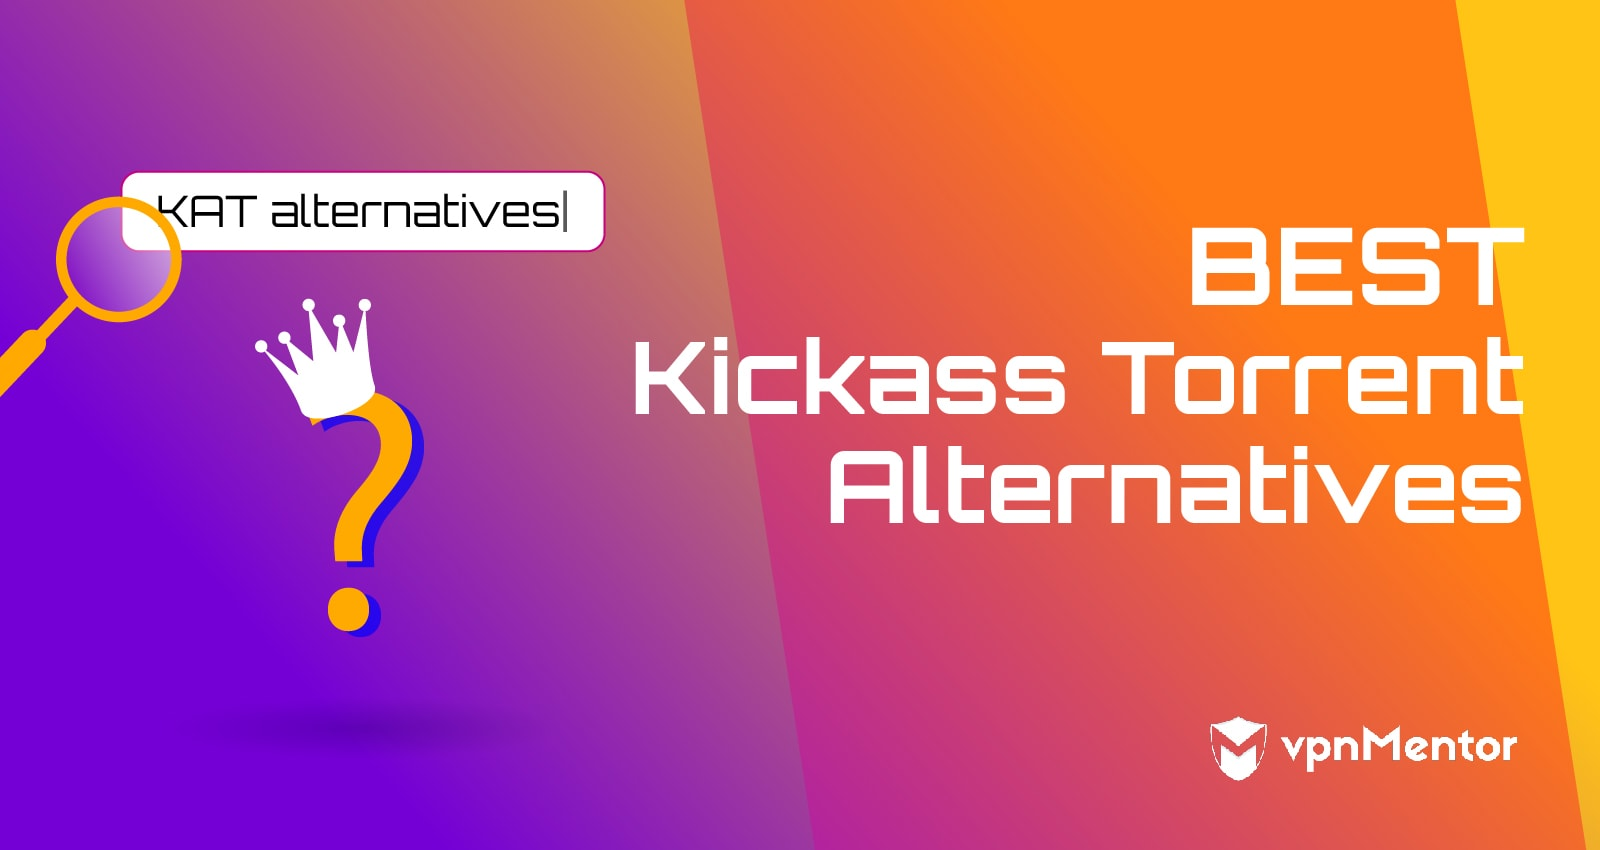 Kickasstorrent alternatives